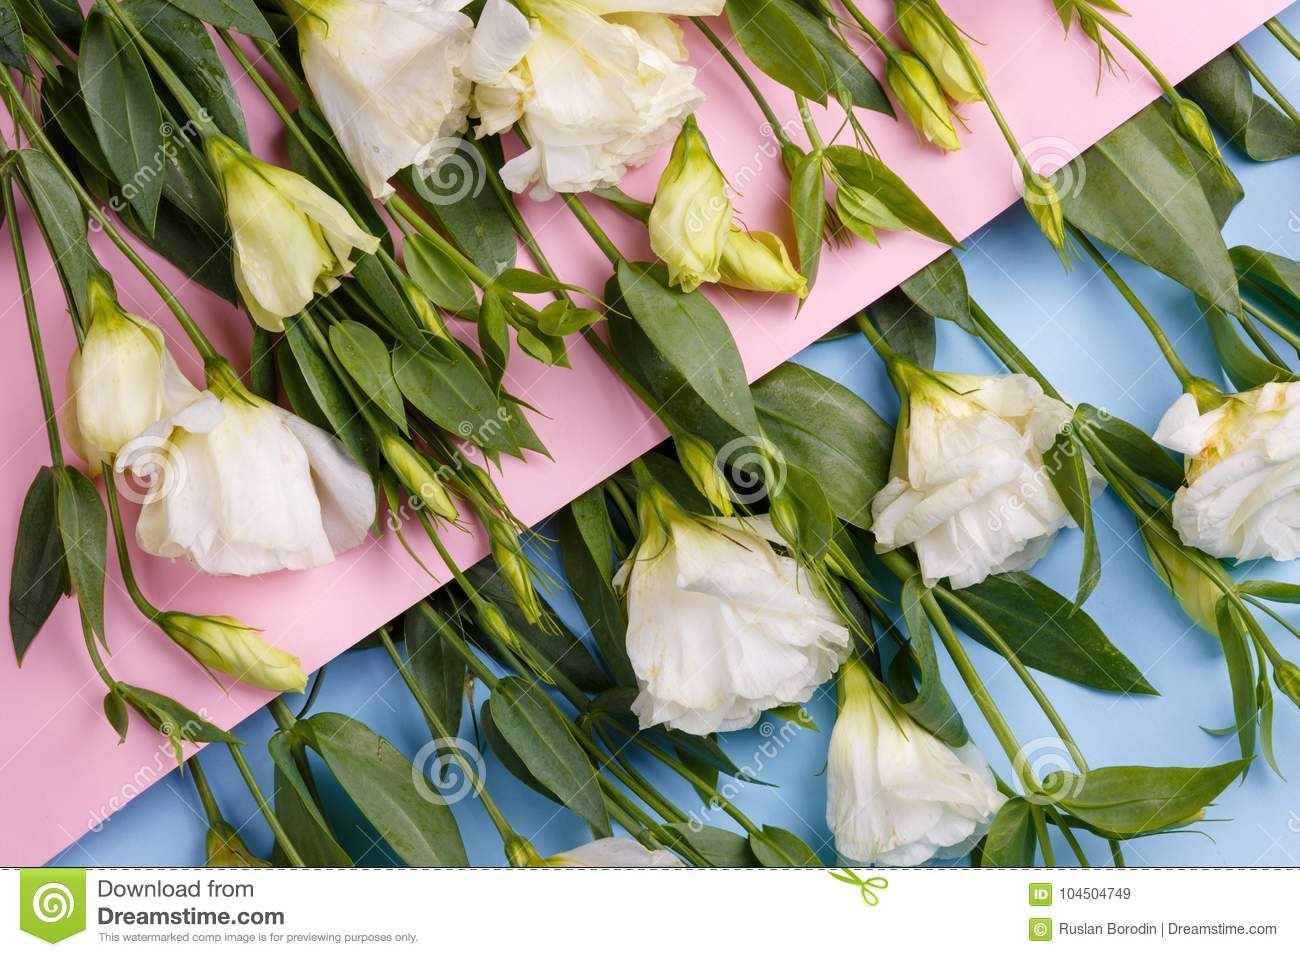 Japanese Roses On A Pink Envelope In Which Roses On A Blue